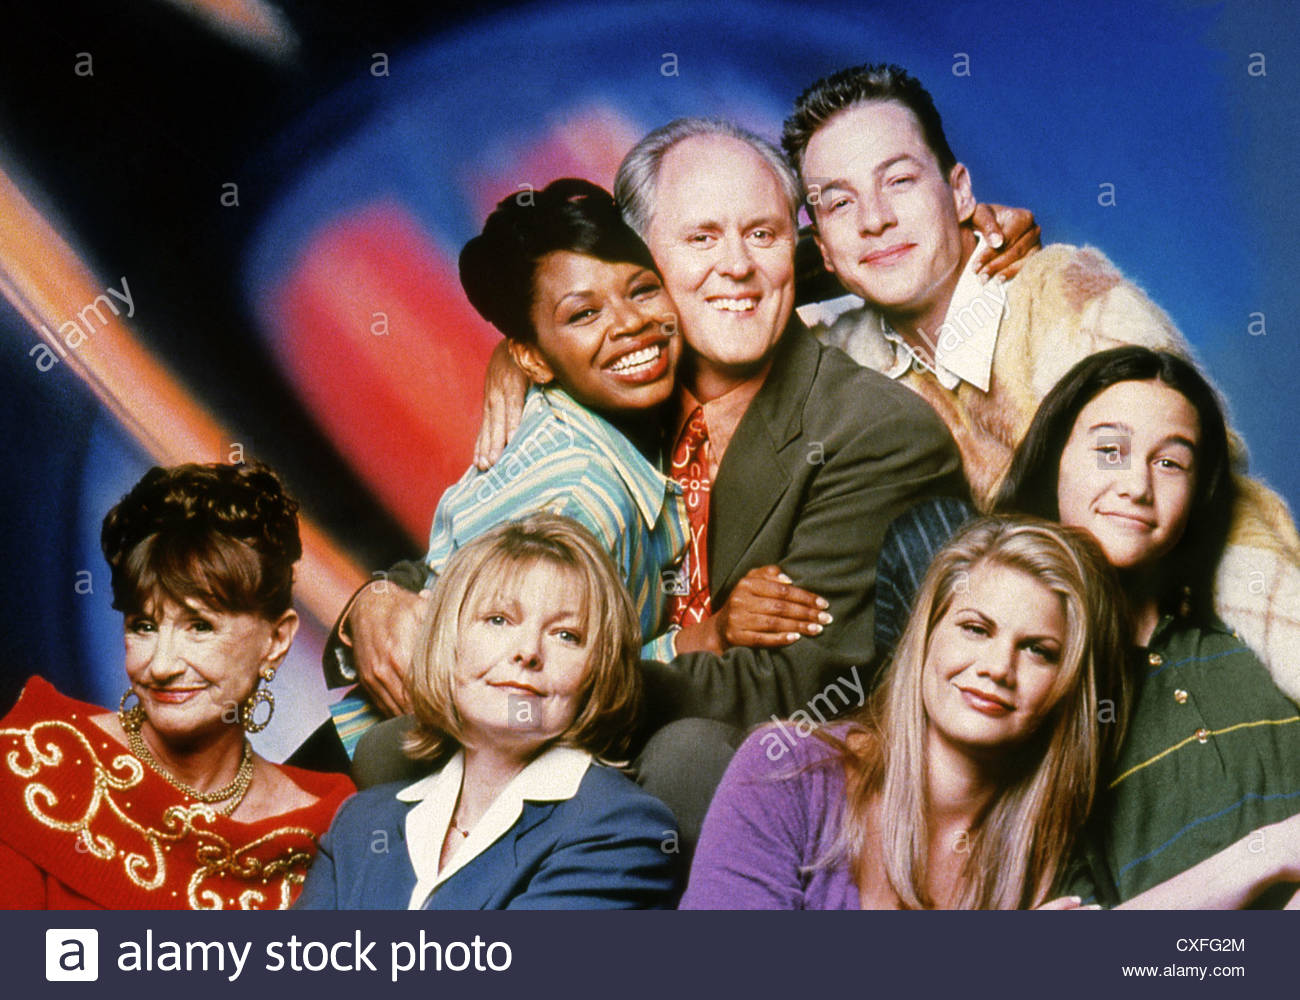 3rd Rock From The Sun Backgrounds on Wallpapers Vista